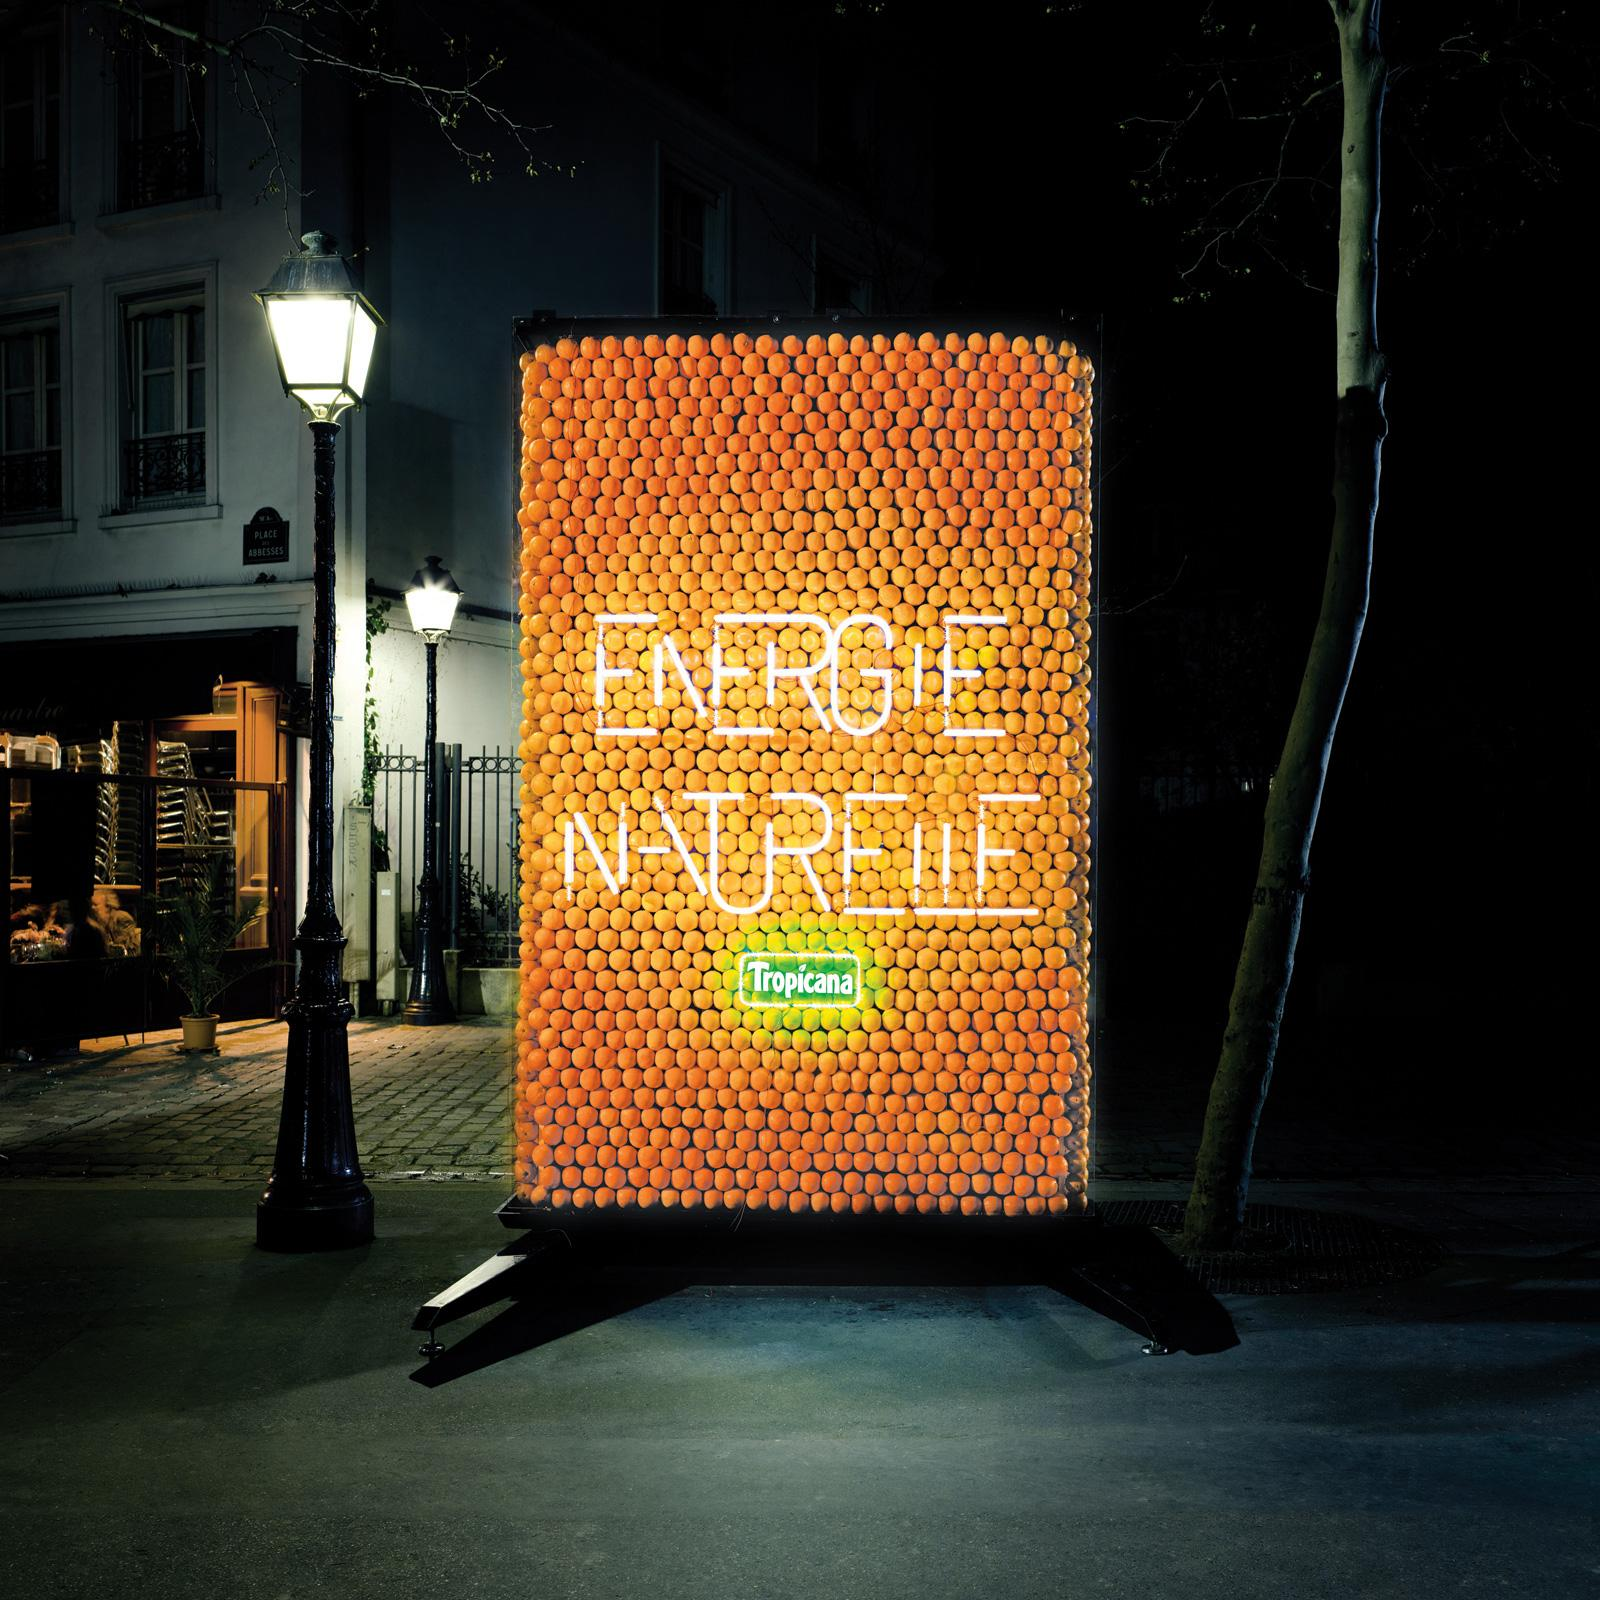 Tropicana Outdoor Ad -  Billboard powered by oranges